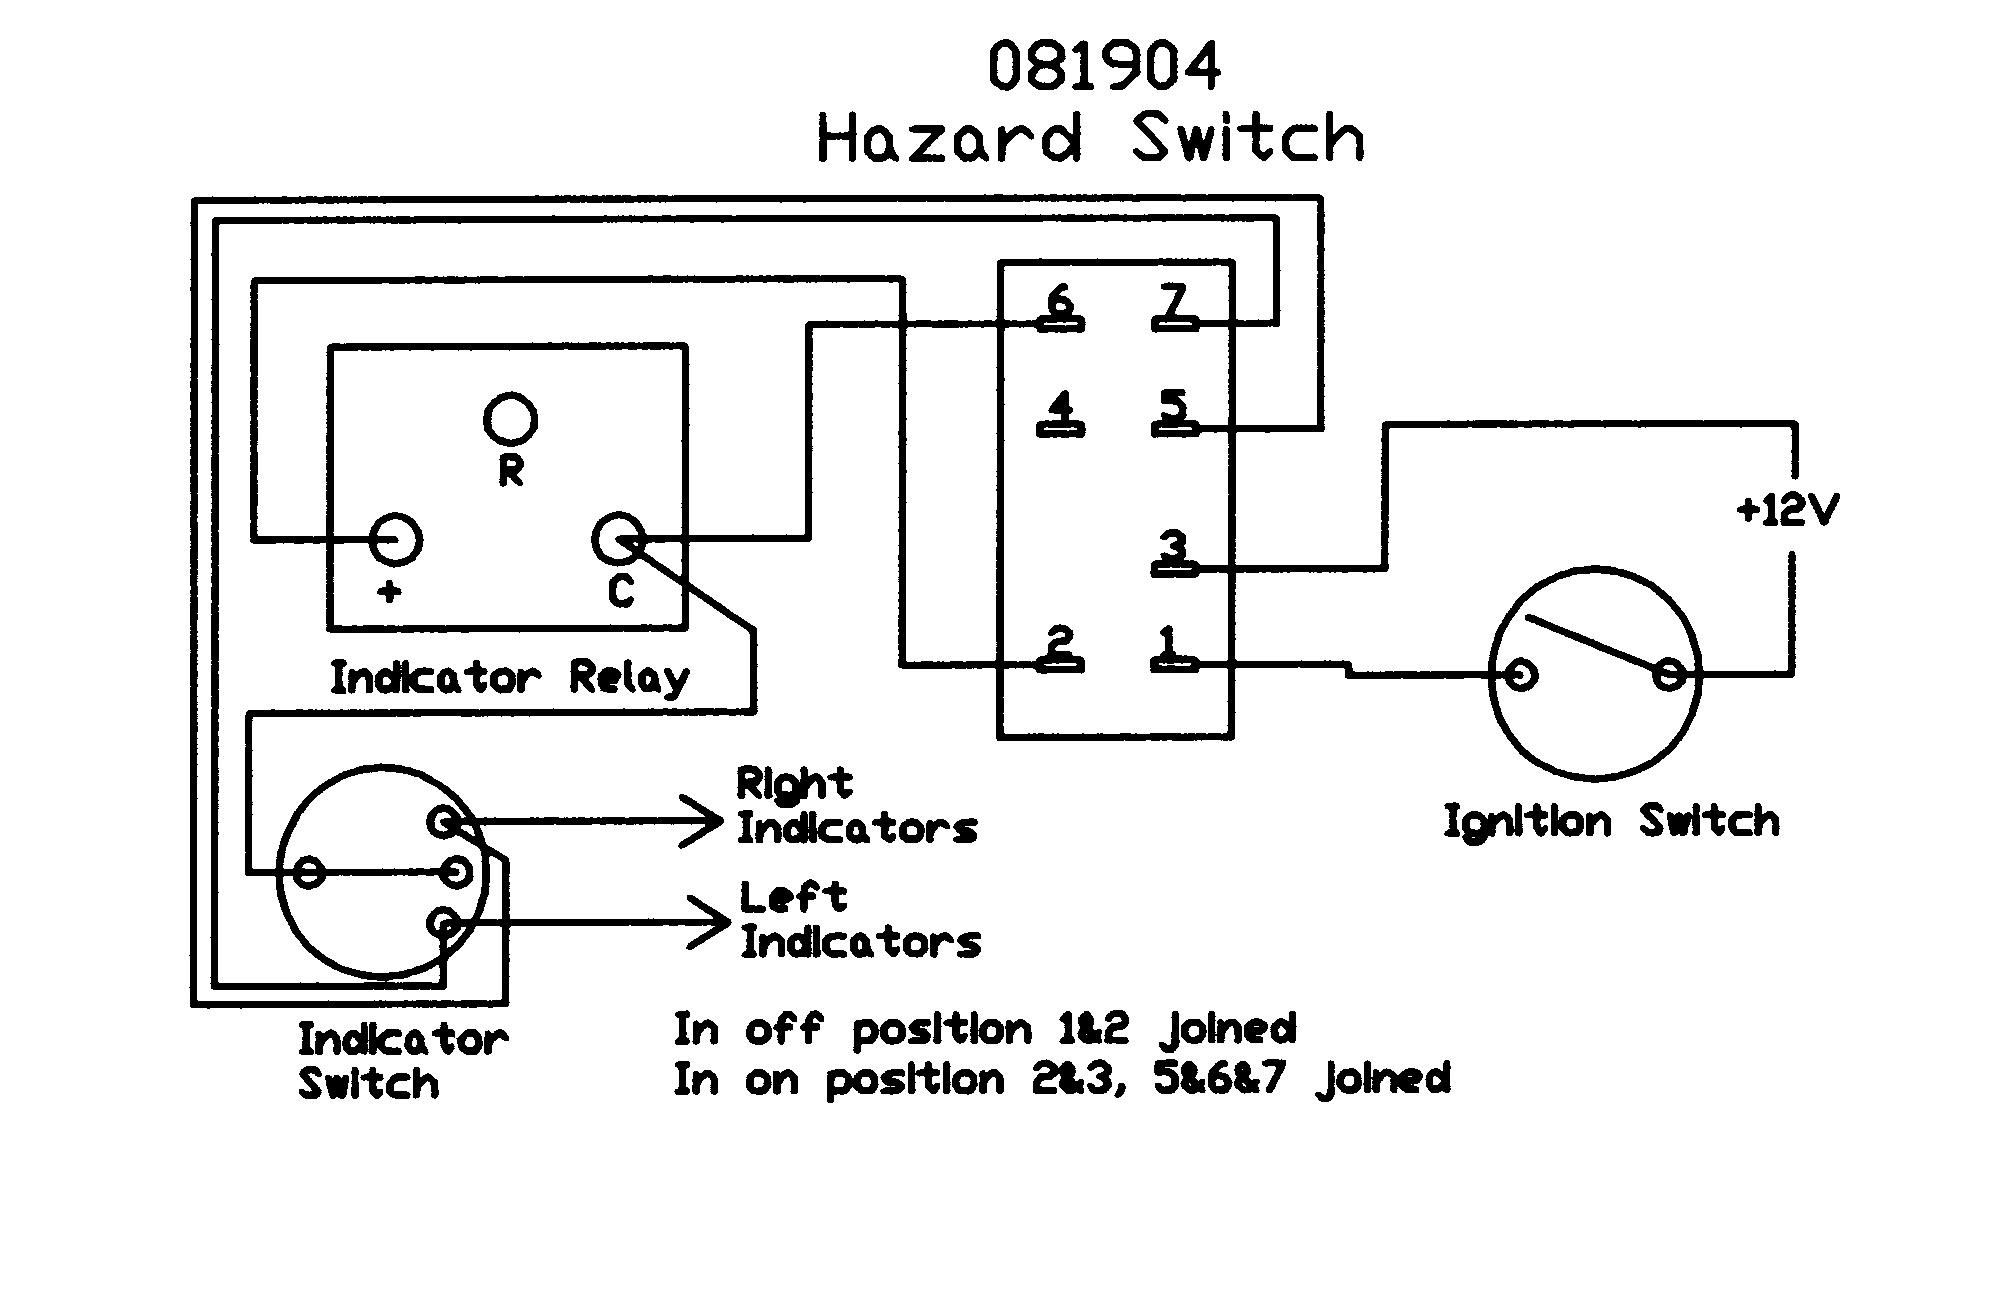 Audi Hazard Switch Relay Wiring Diagram Diagrams Moreover How To Wire On 12v Images Gallery